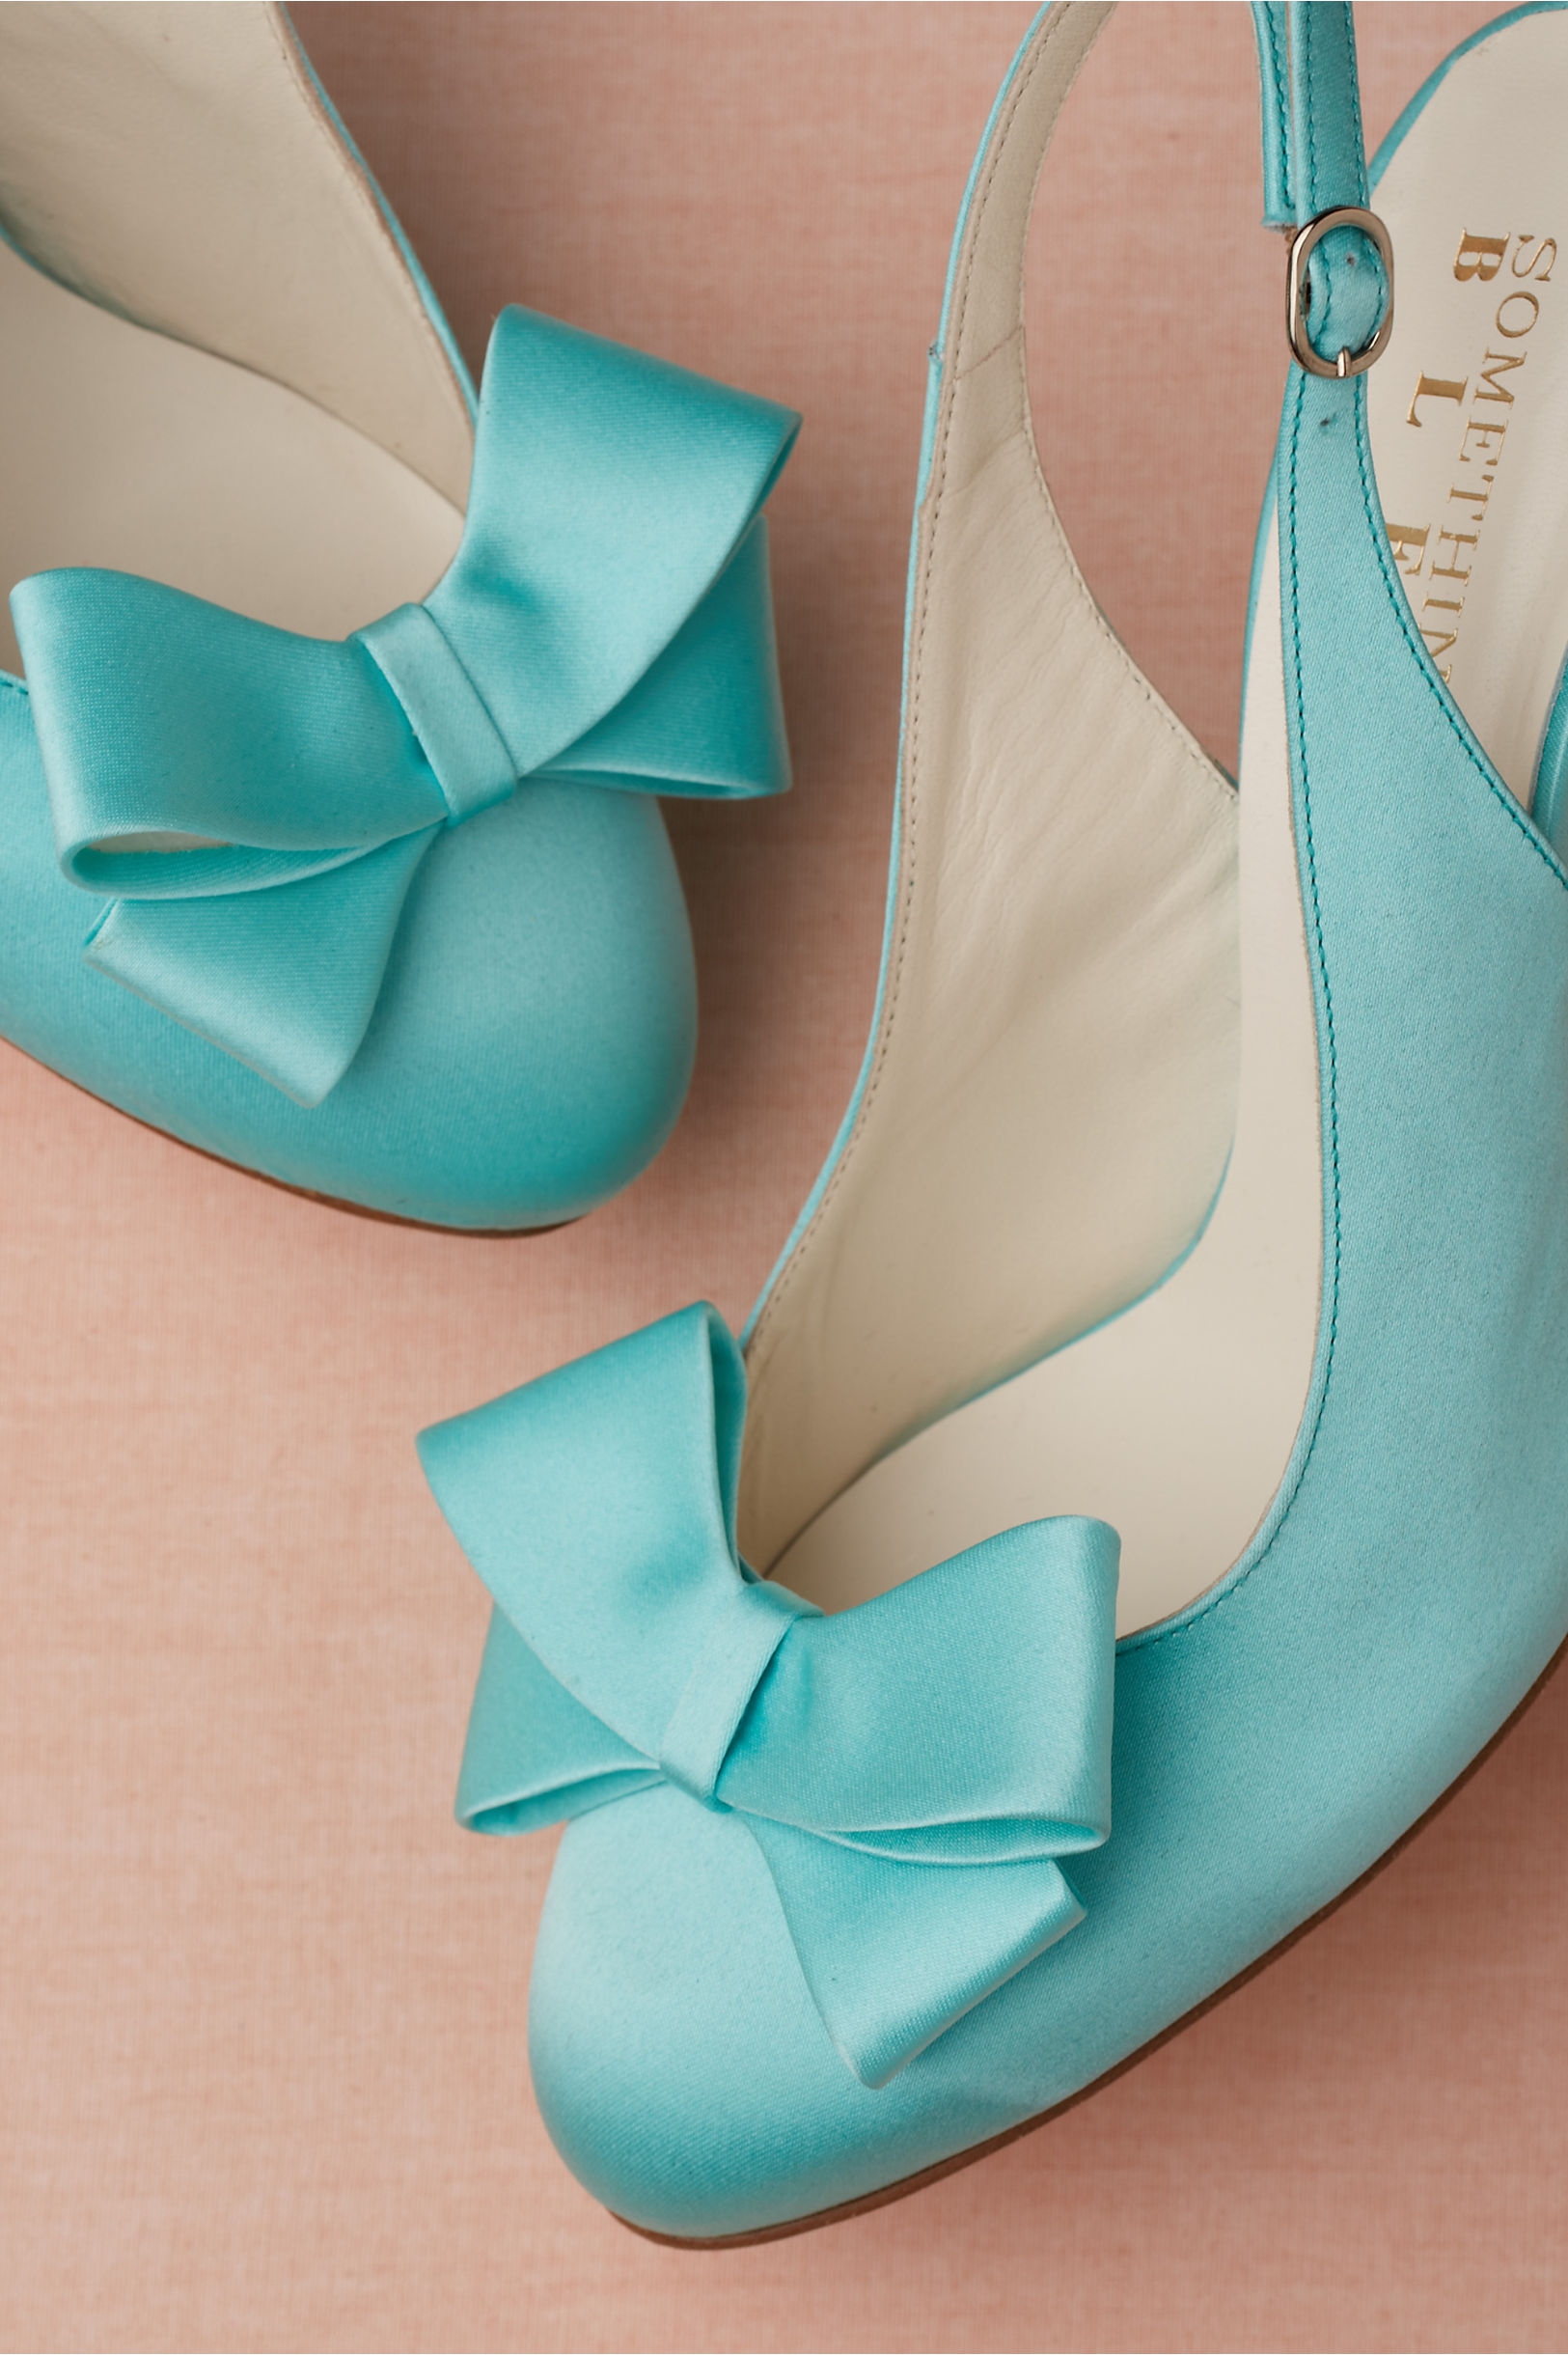 Bow-Topped Slingbacks in Sale | BHLDN